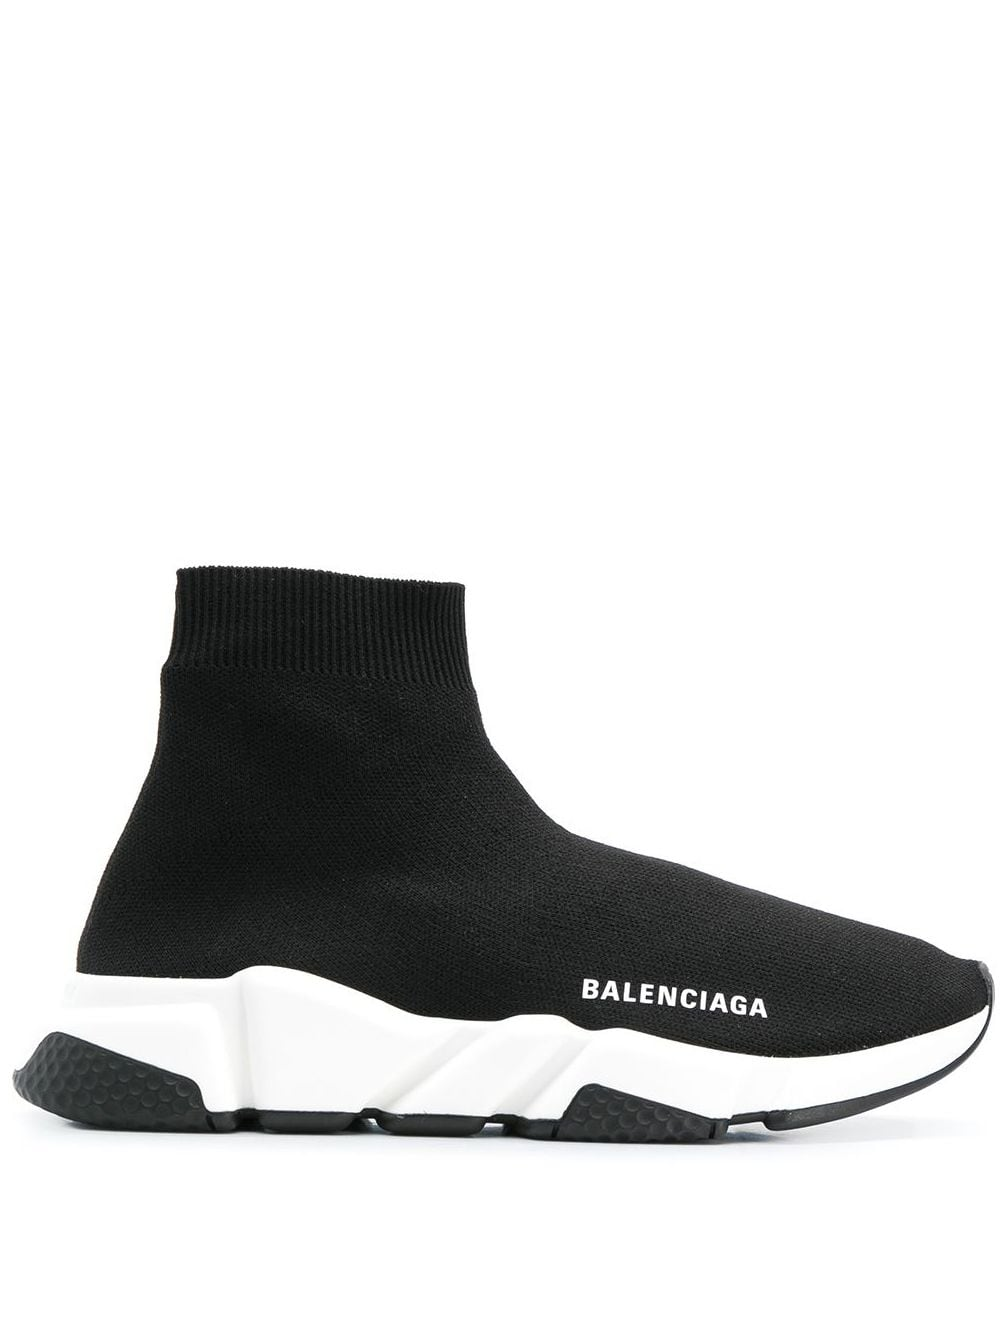 Balenciaga Speed Pull On Sneakers Farfetch Womens Sneakers Trainer Heels Sneakers